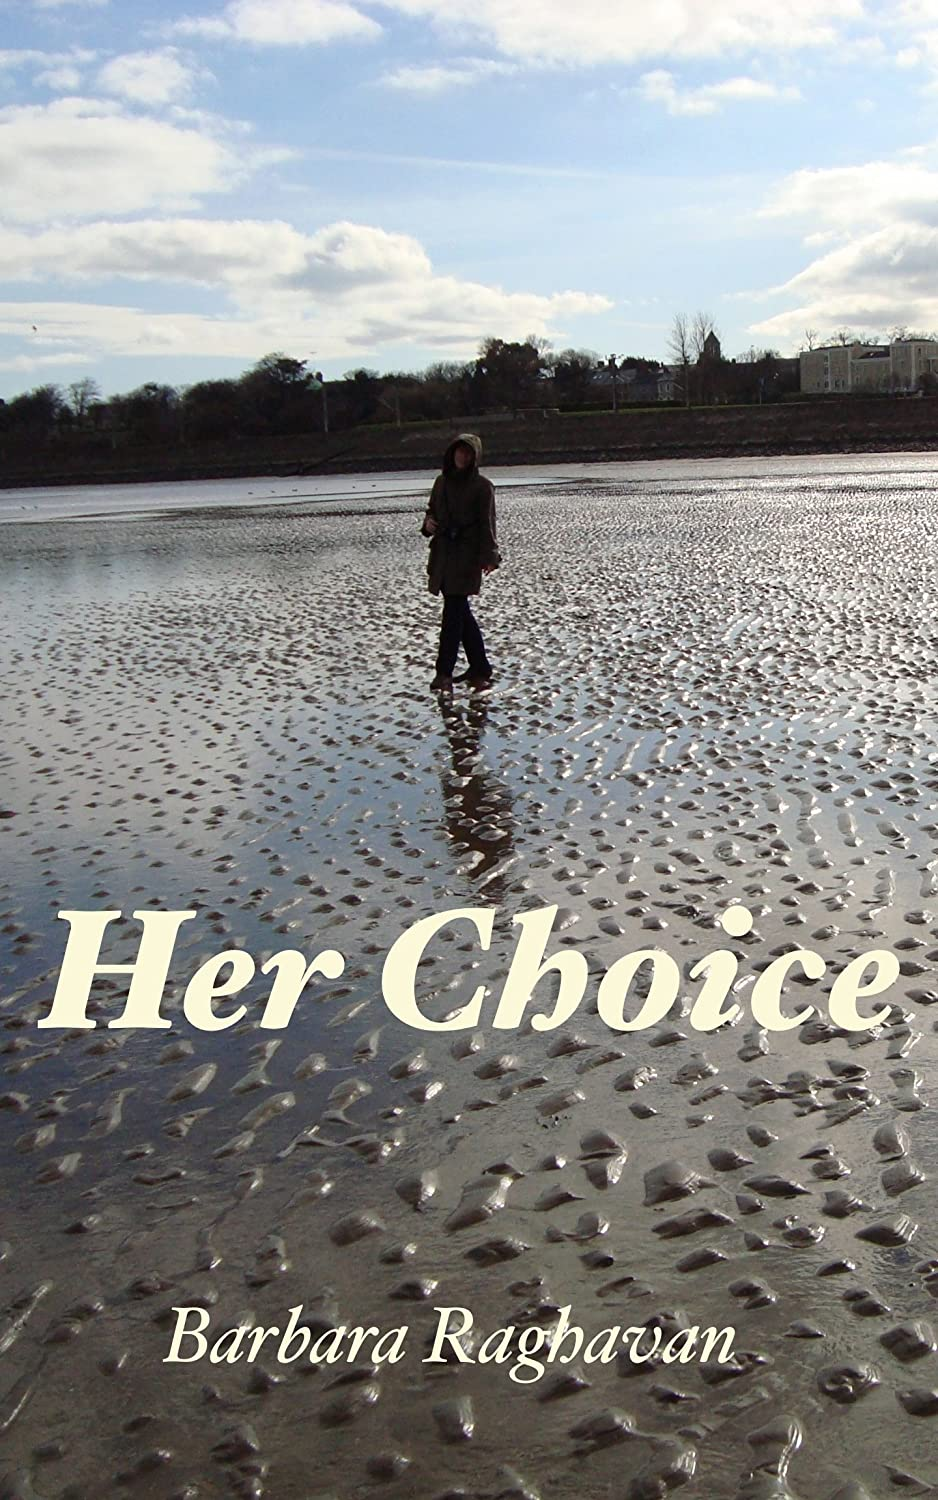 Image: Her Choice, by Barbara Raghavan. Published: Barbara Raghavan (July 23, 2014)